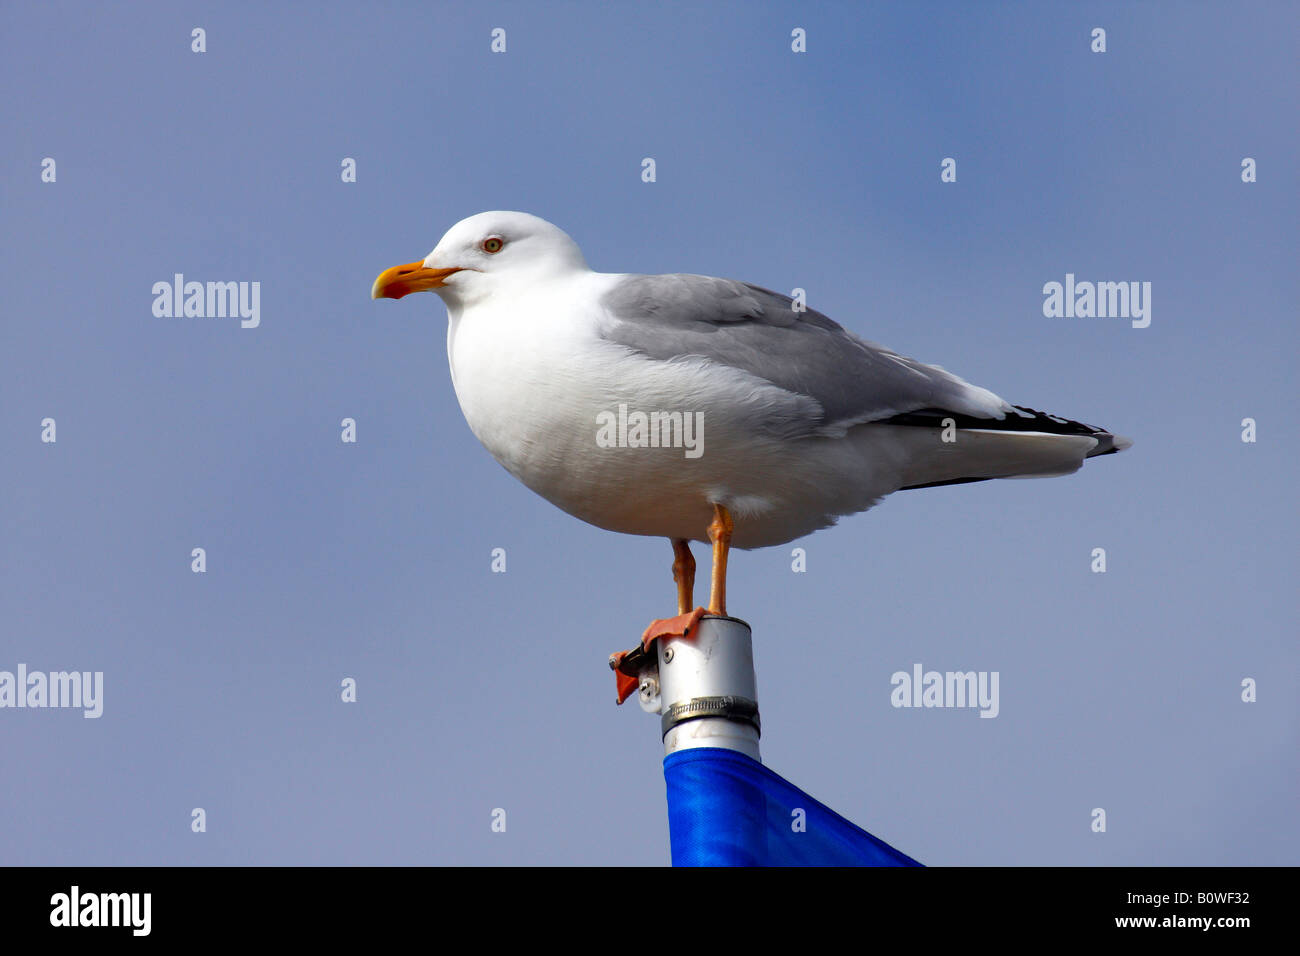 Herring Gull (Larus argentatus) perched on a flagpole - Stock Image